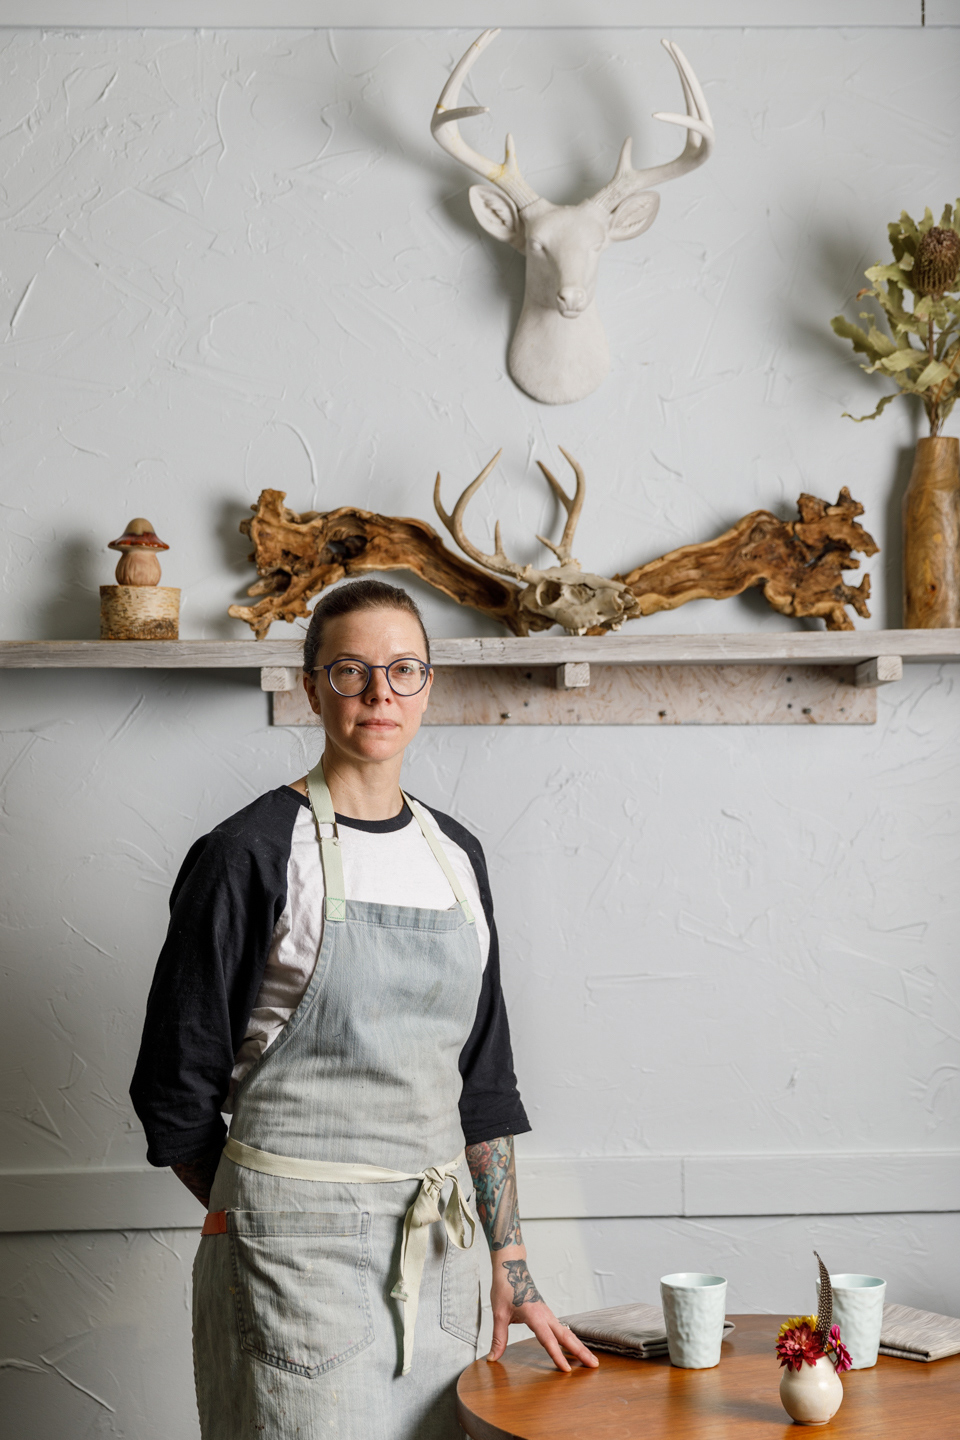 Iliana Regan, Michelin-starred chef of the restaurant Elizabeth in Chicago, stands next to a table in her restaurant before dinner service on November 22nd, 2019.